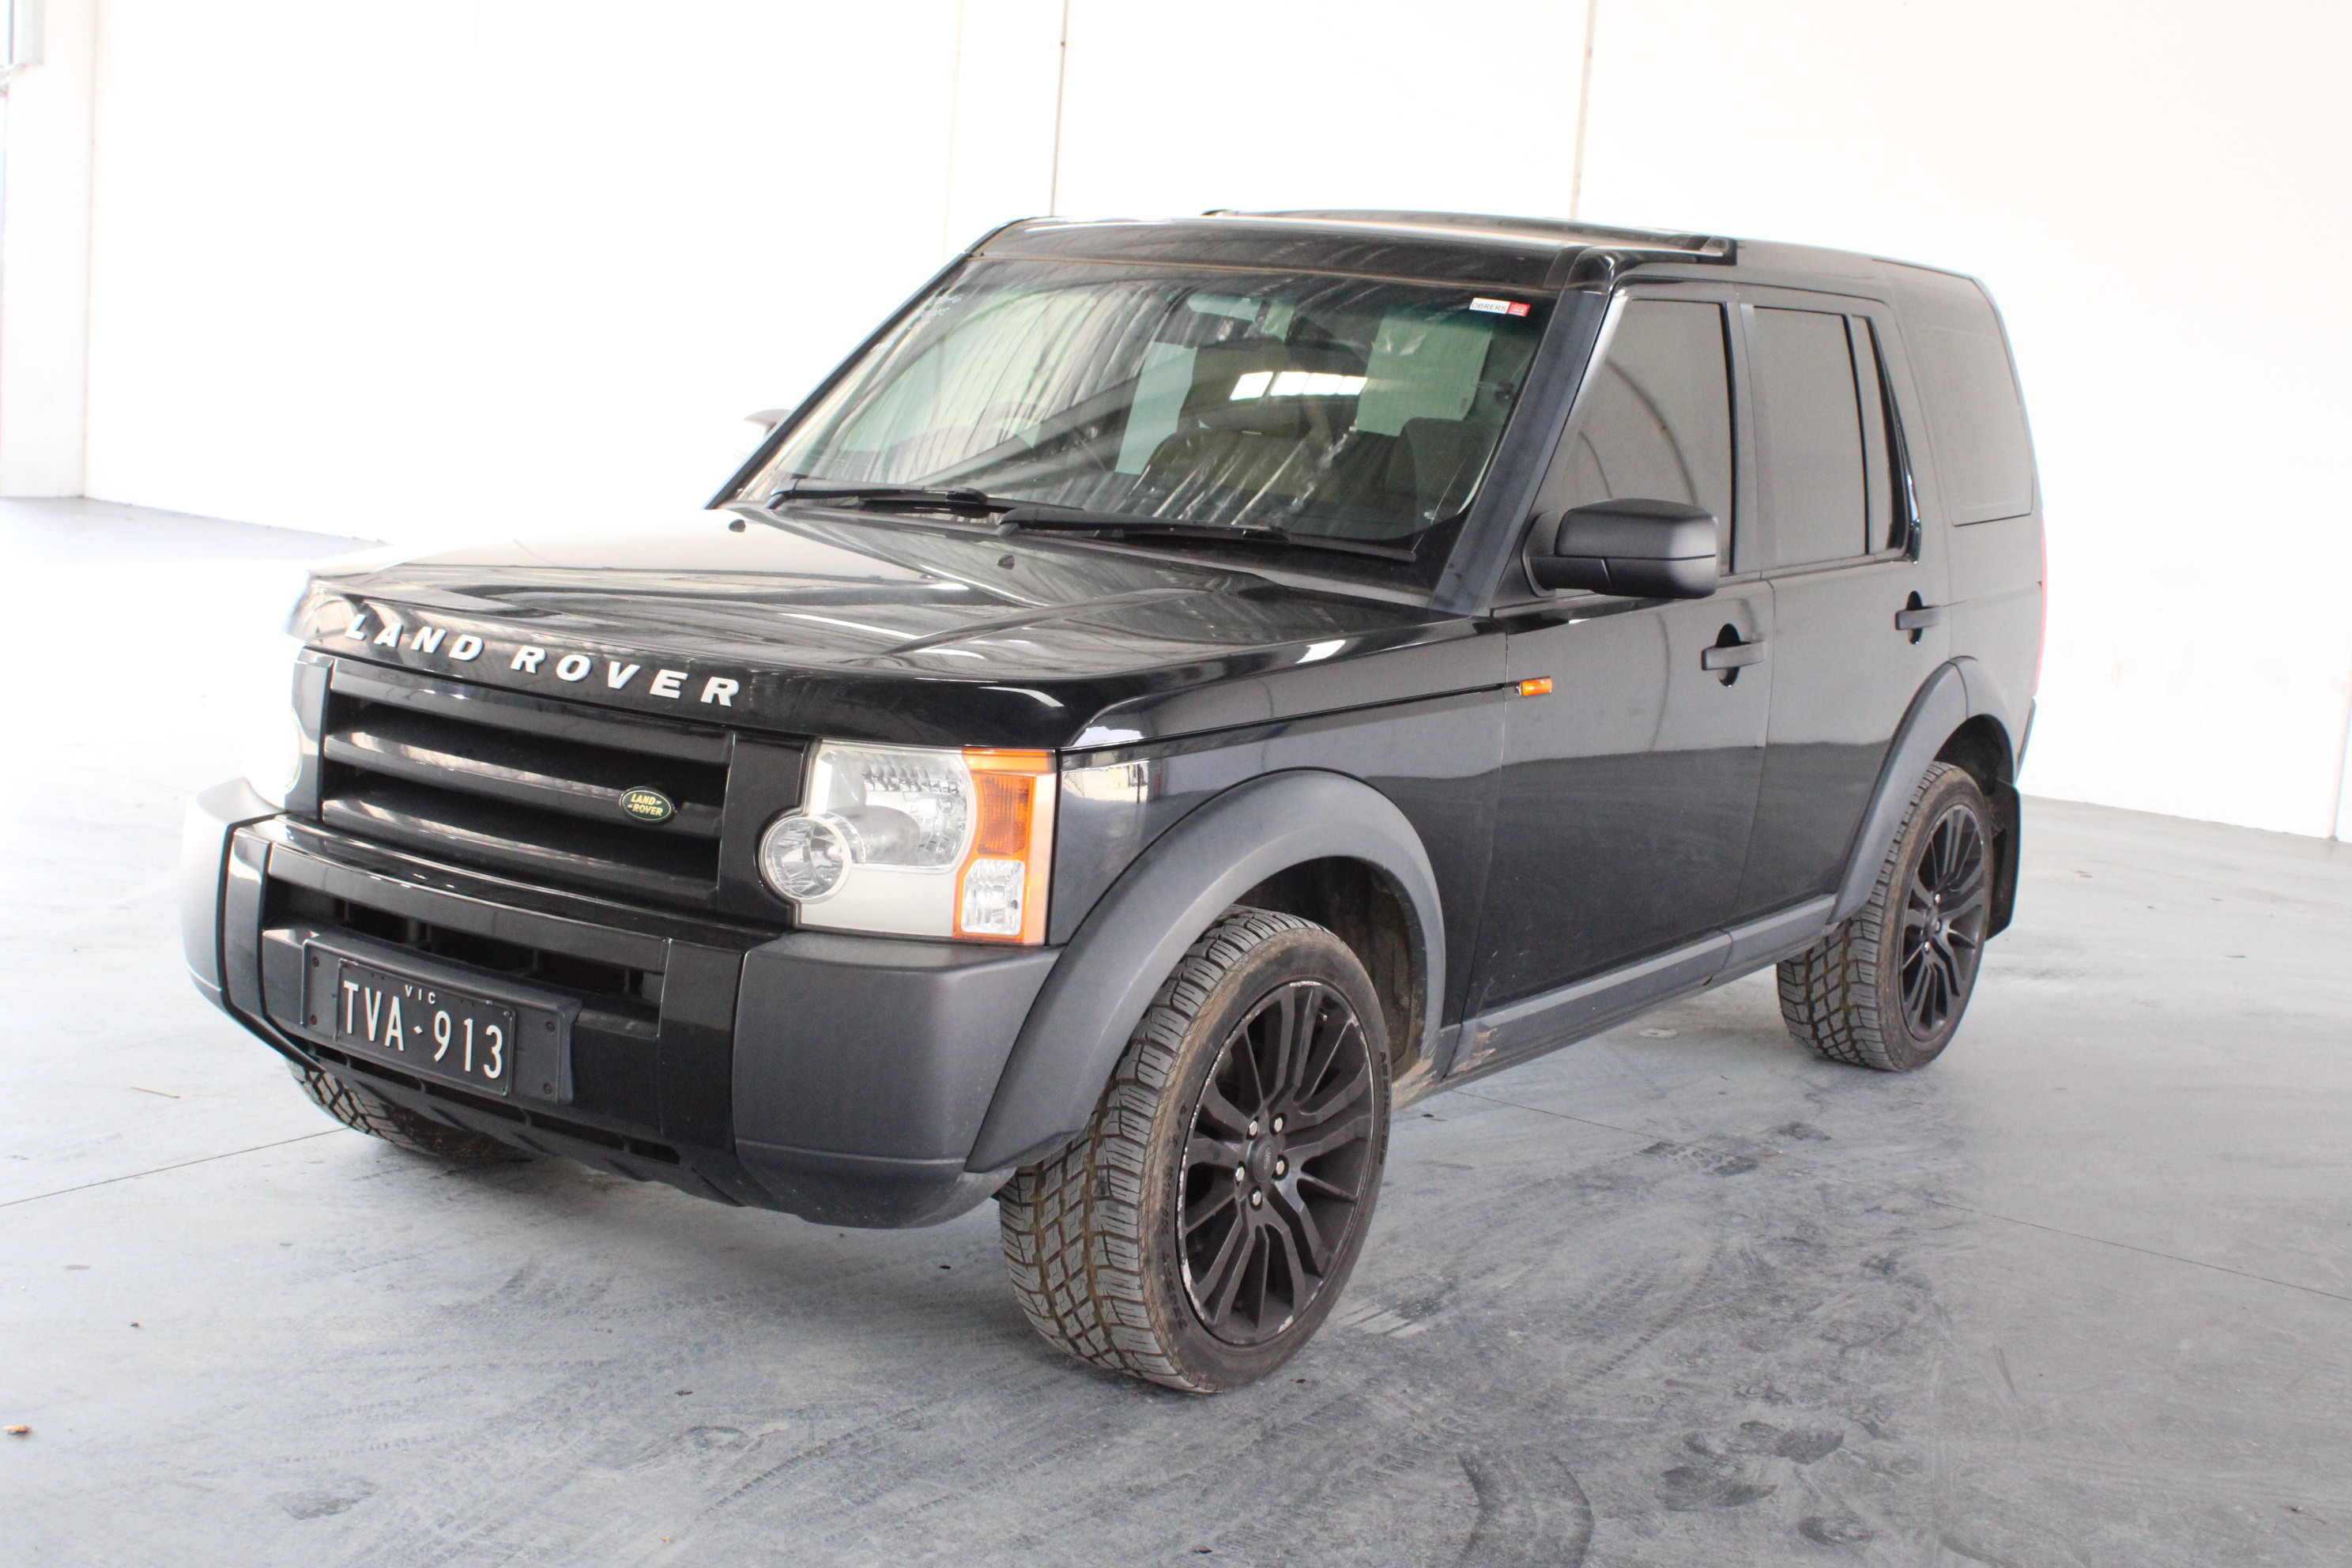 2005 Land Rover Discovery 3 S Series III Automatic Wagon